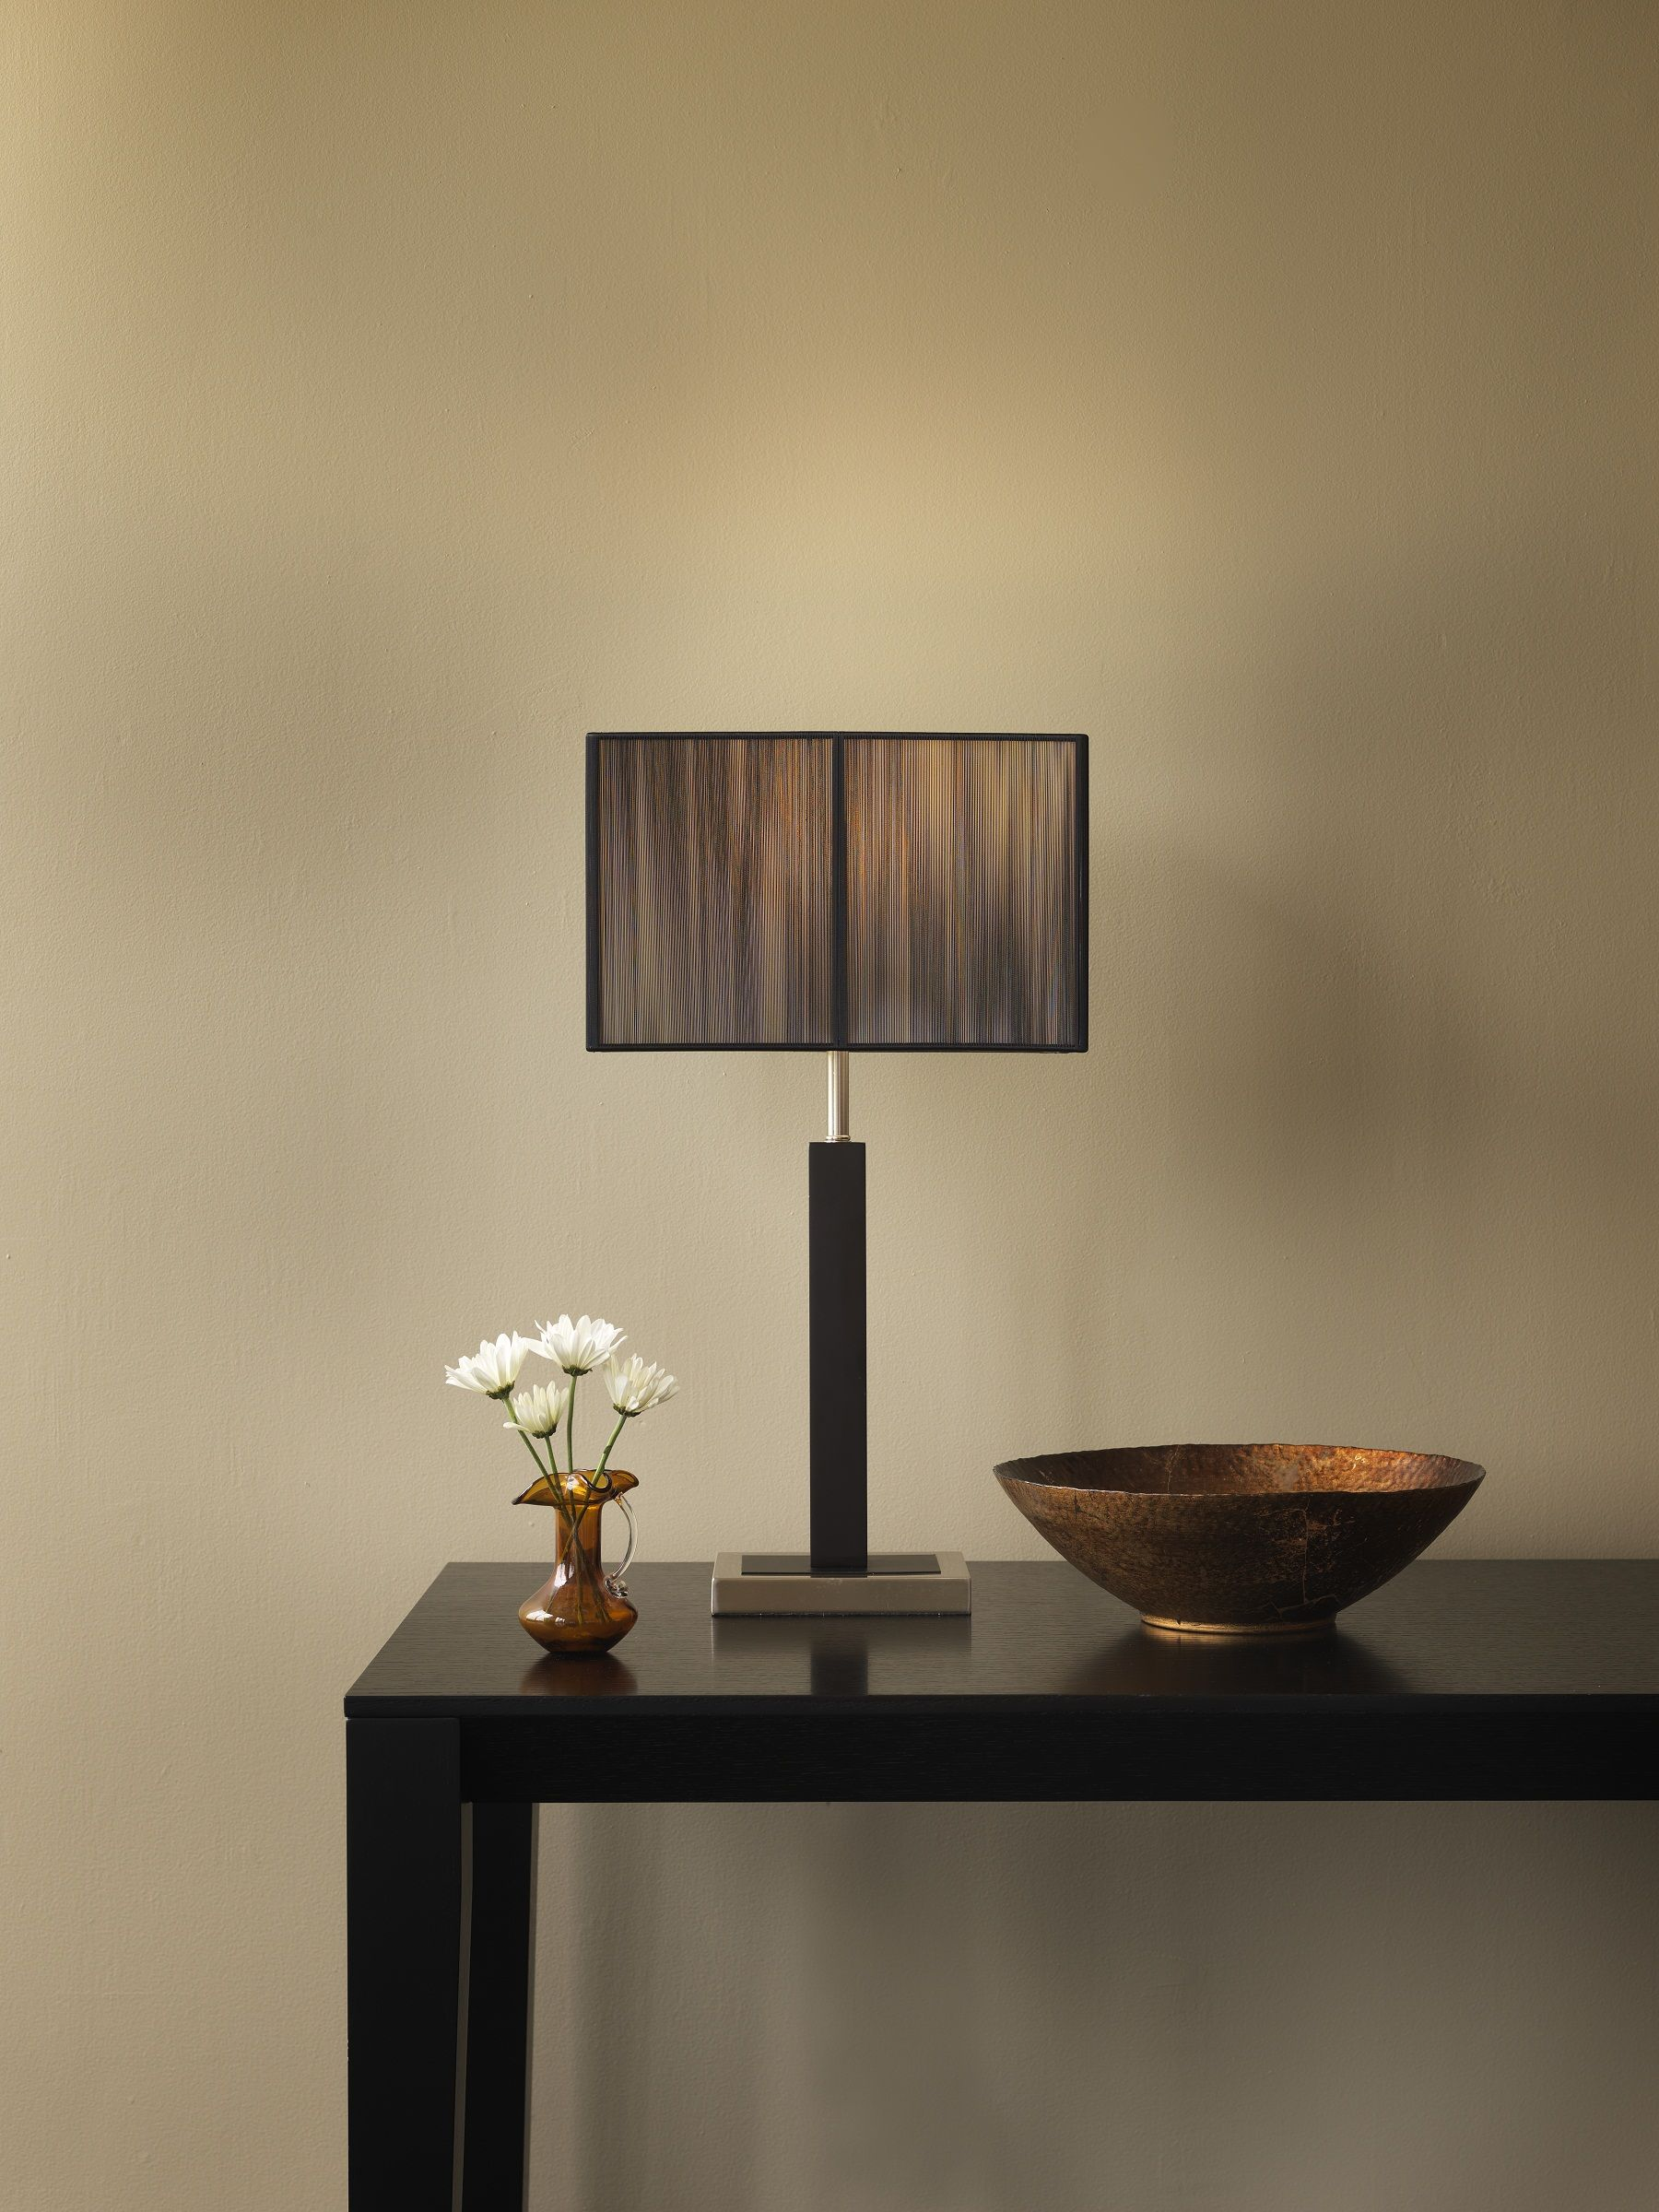 Sharper image table lamp black silk string shade w brown painted wooden smooth chrome base si100014 189 00 available at selected retailers